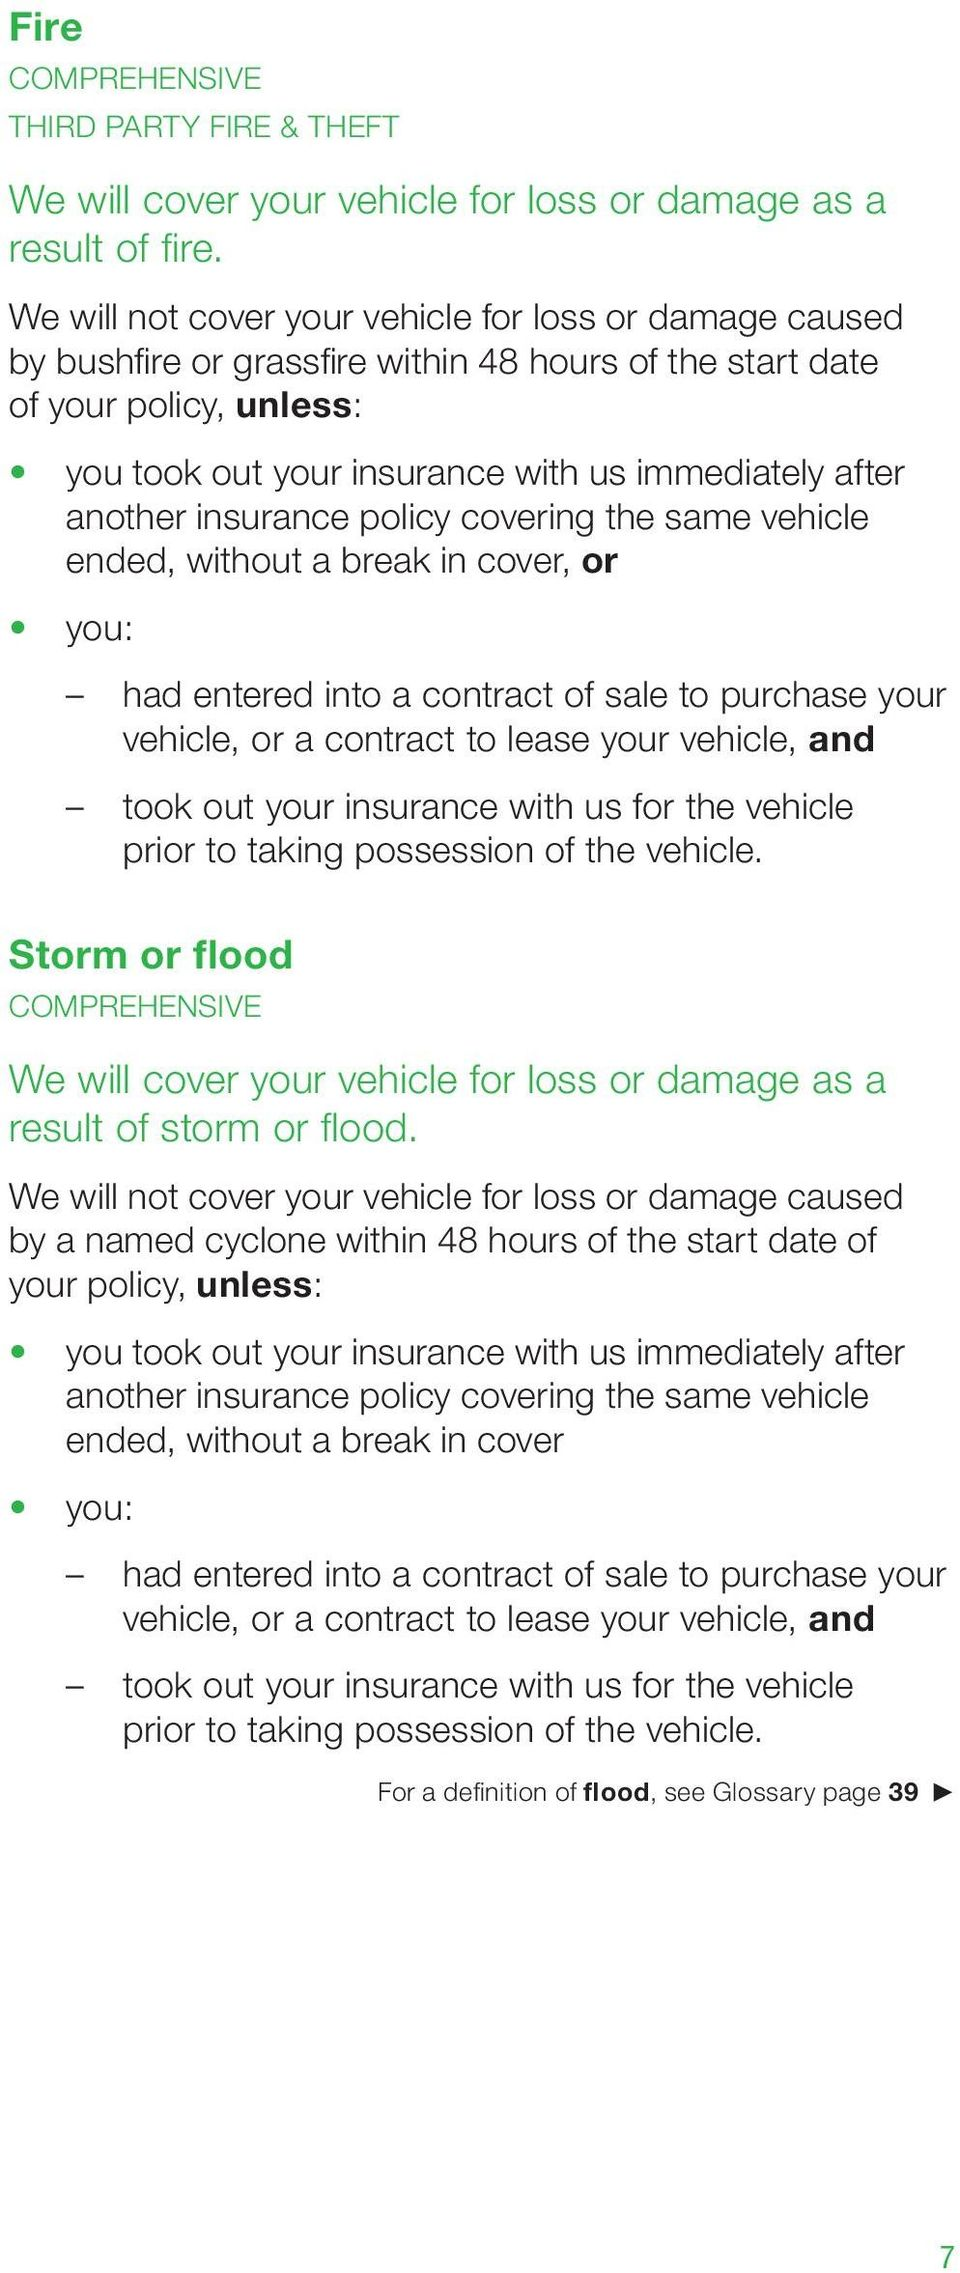 insurance policy covering the same vehicle ended, without a break in cover, or you: had entered into a contract of sale to purchase your vehicle, or a contract to lease your vehicle, and took out